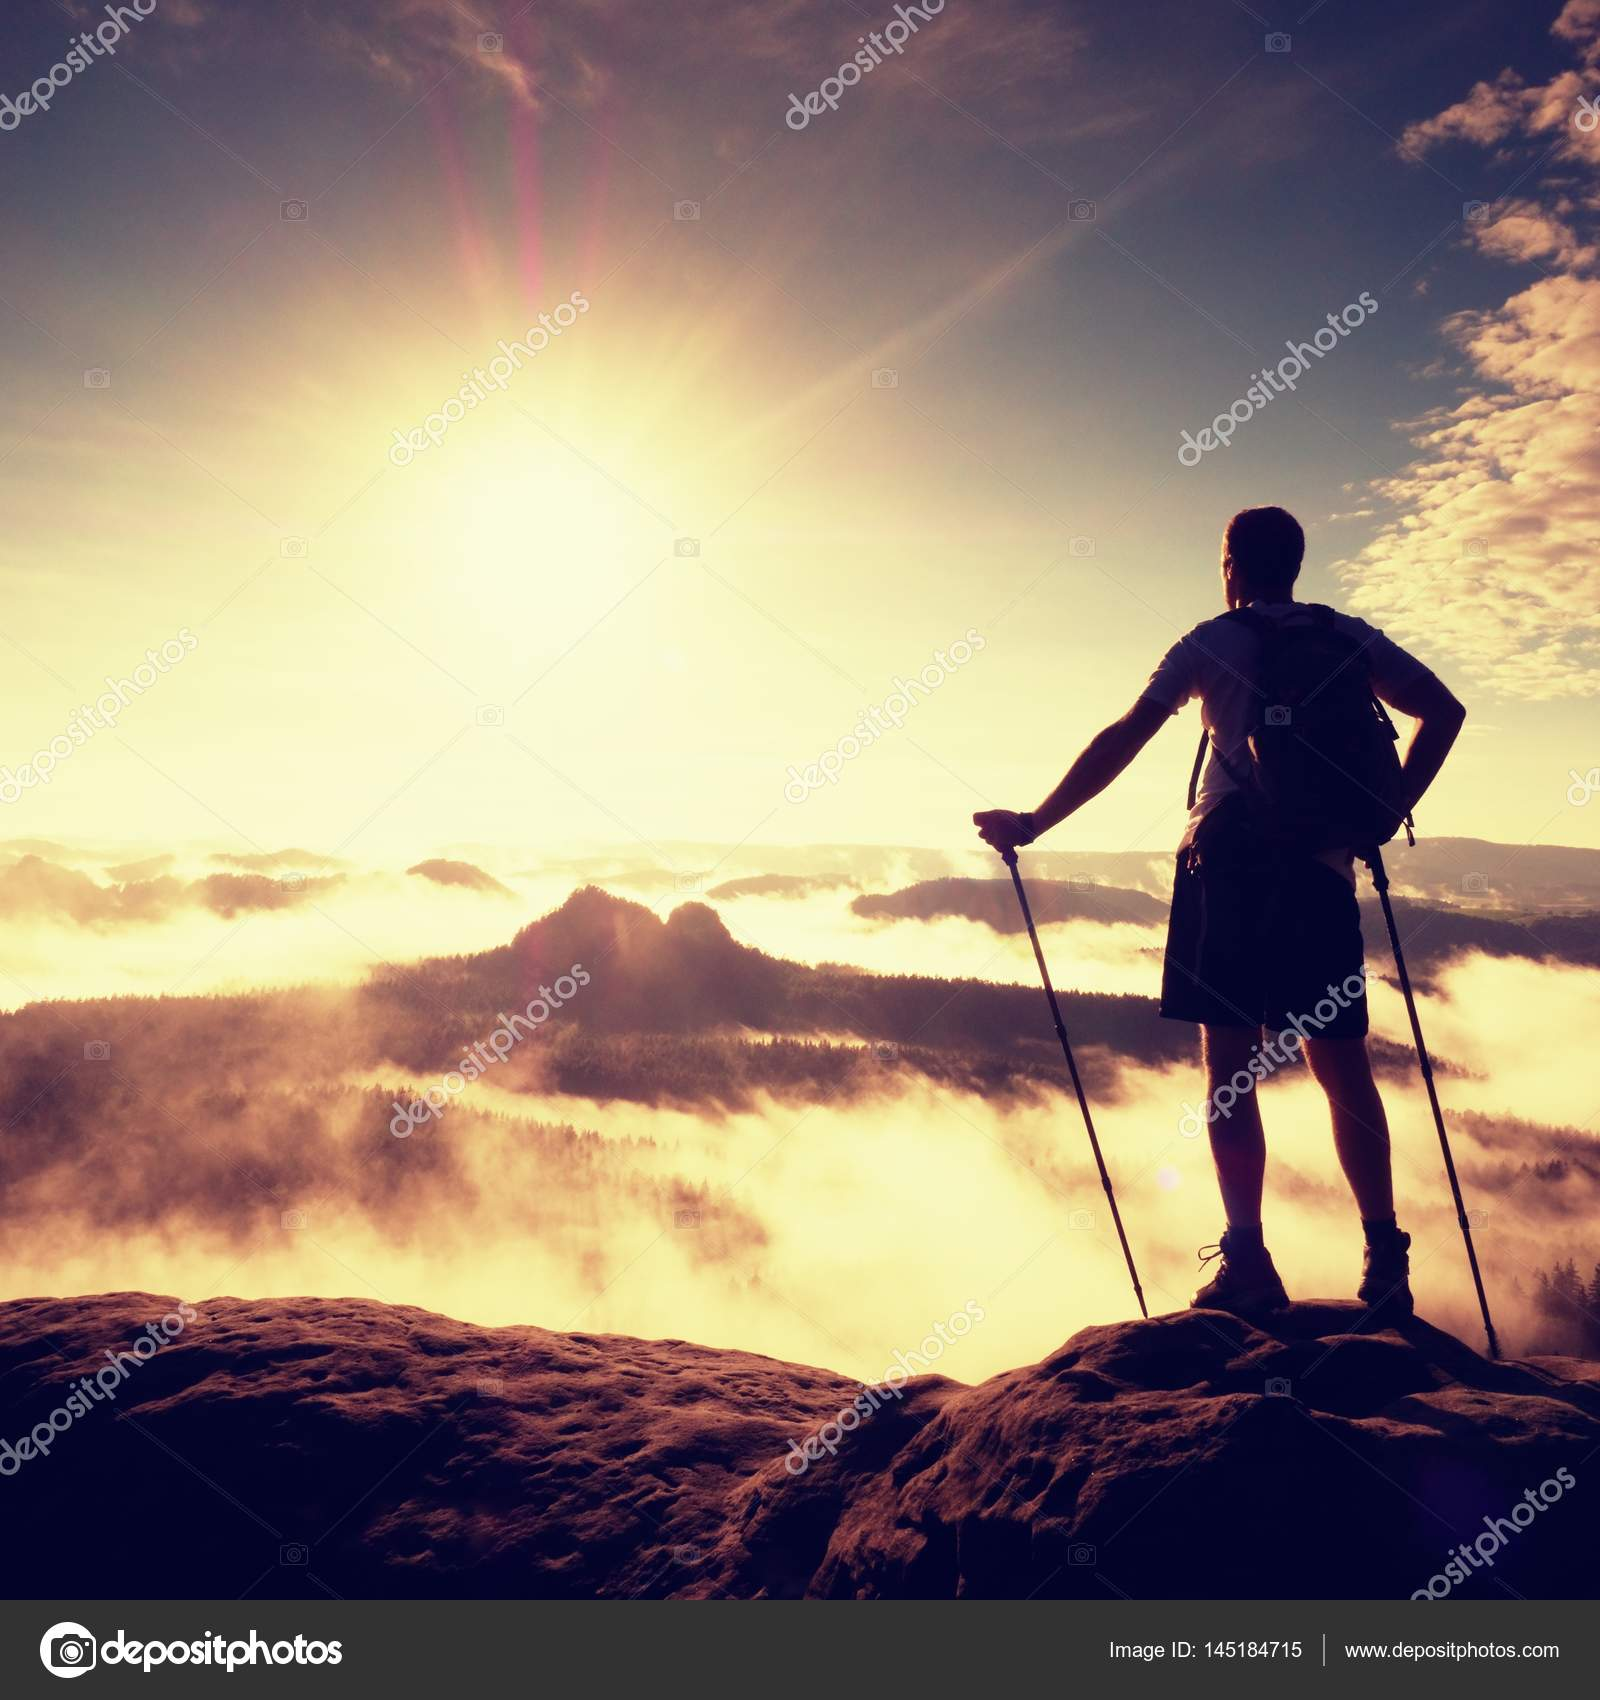 Tall backpacker with poles in hand  Sunny misty daybreak in rocky